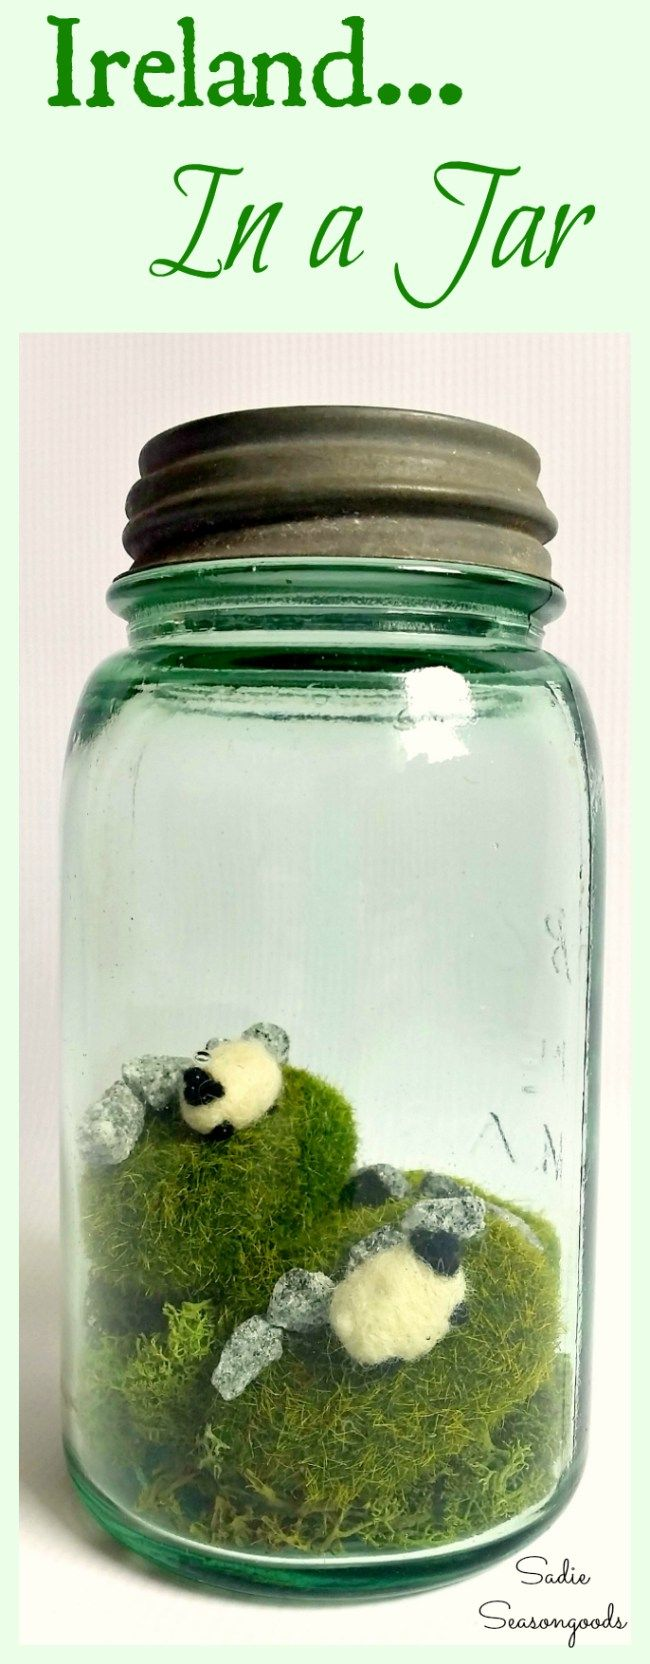 Recreating Irish countryside in a vintage green Mason Jar for St. Patrick's Day is surprisingly easy! Plus it's about as cute as it can get. #SadieSeasongoods / www.sadieseasongoods.com